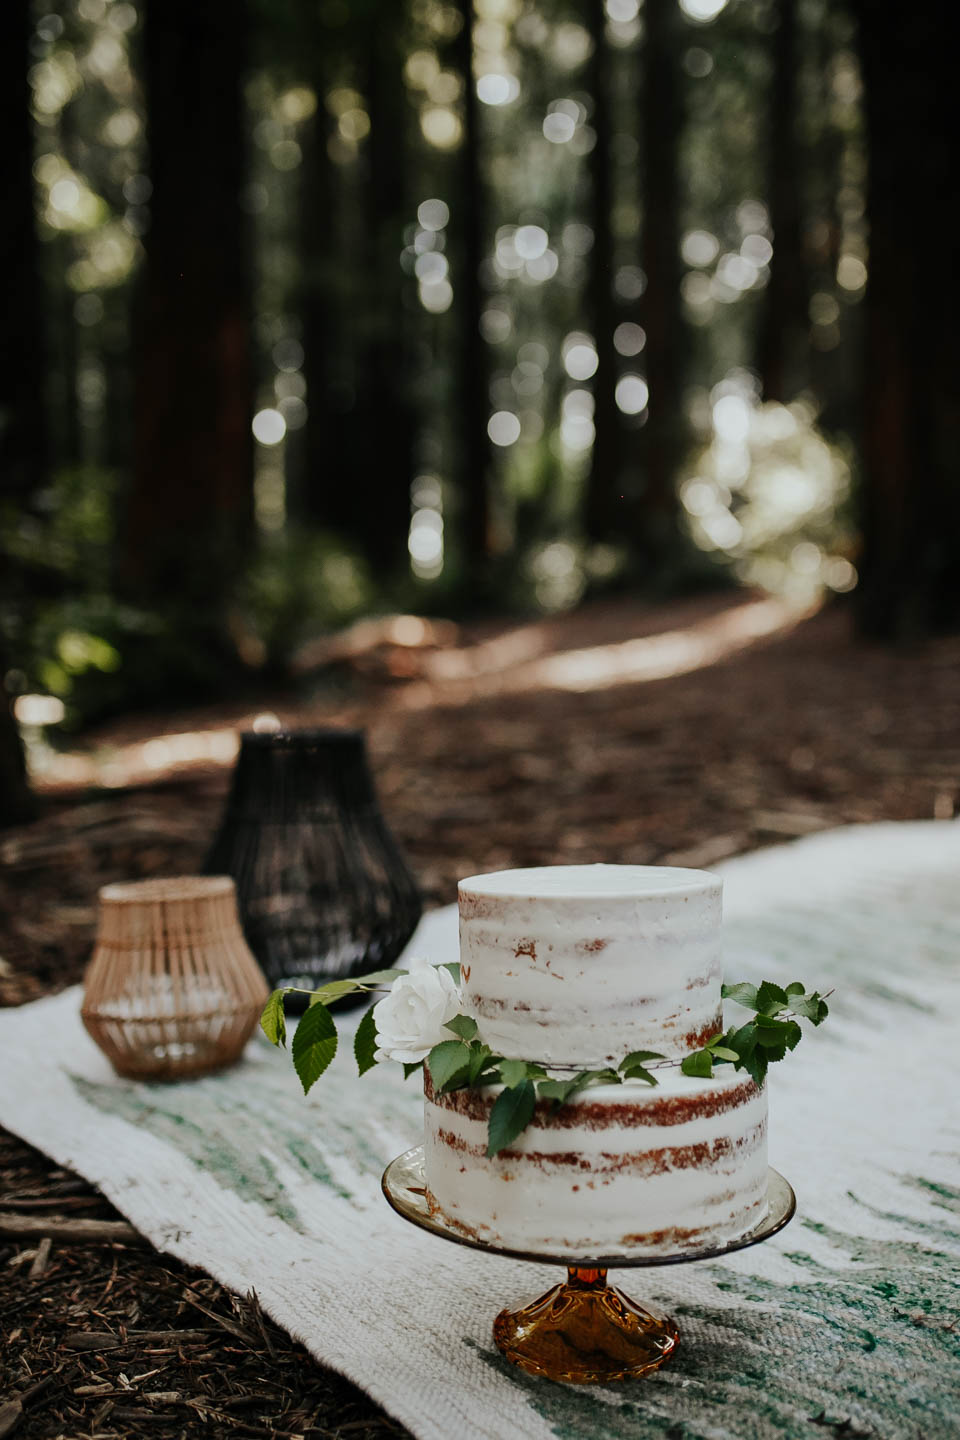 RedWoods_Styled_May2-1-2.jpg